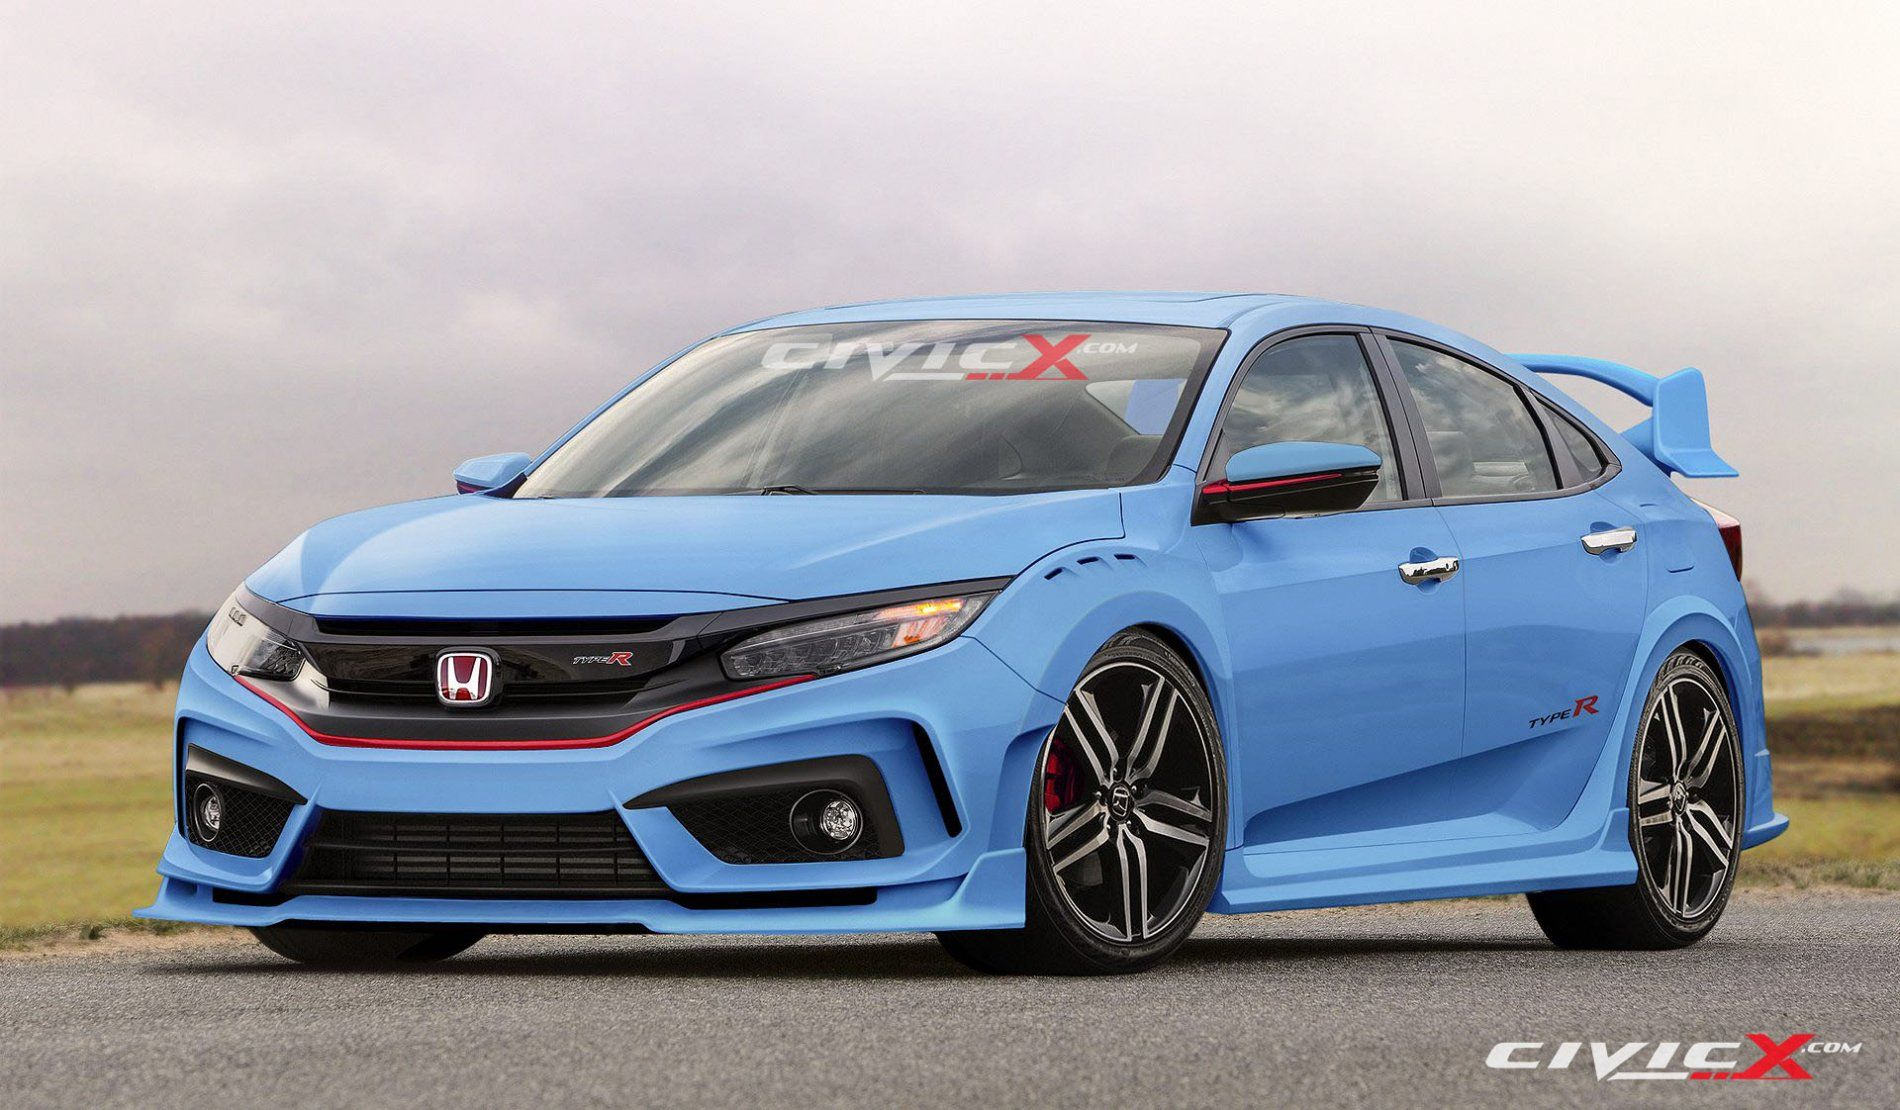 Best Honda Civic Sedan Ideas On Pinterest Honda Civic Wheels